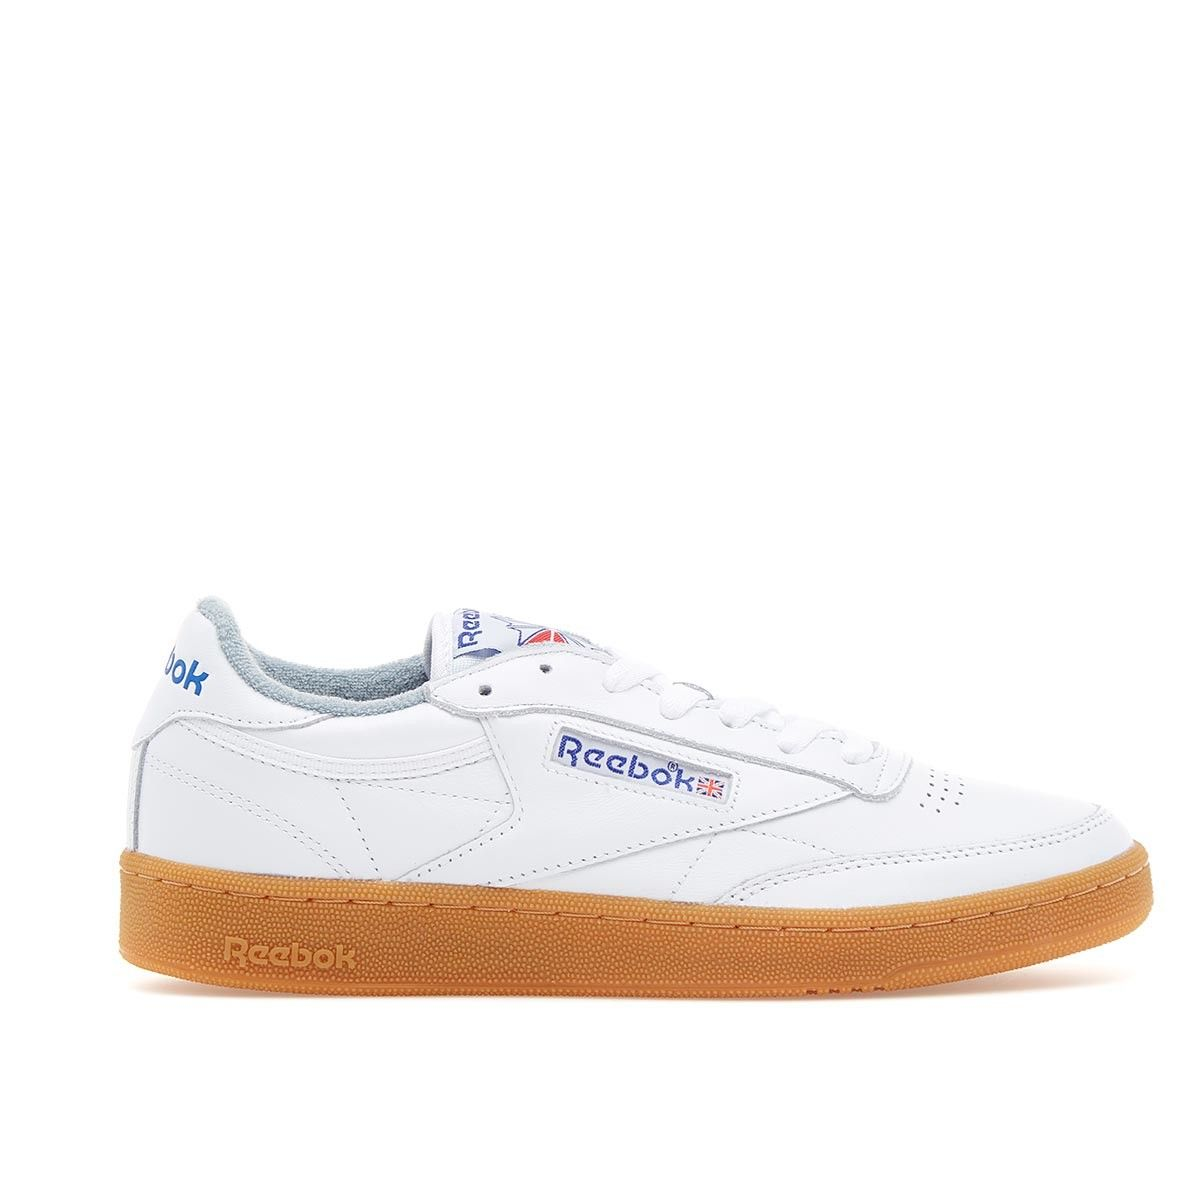 Club C 85 Gum from the S S2017 Reebok collection in white 3fe357e43